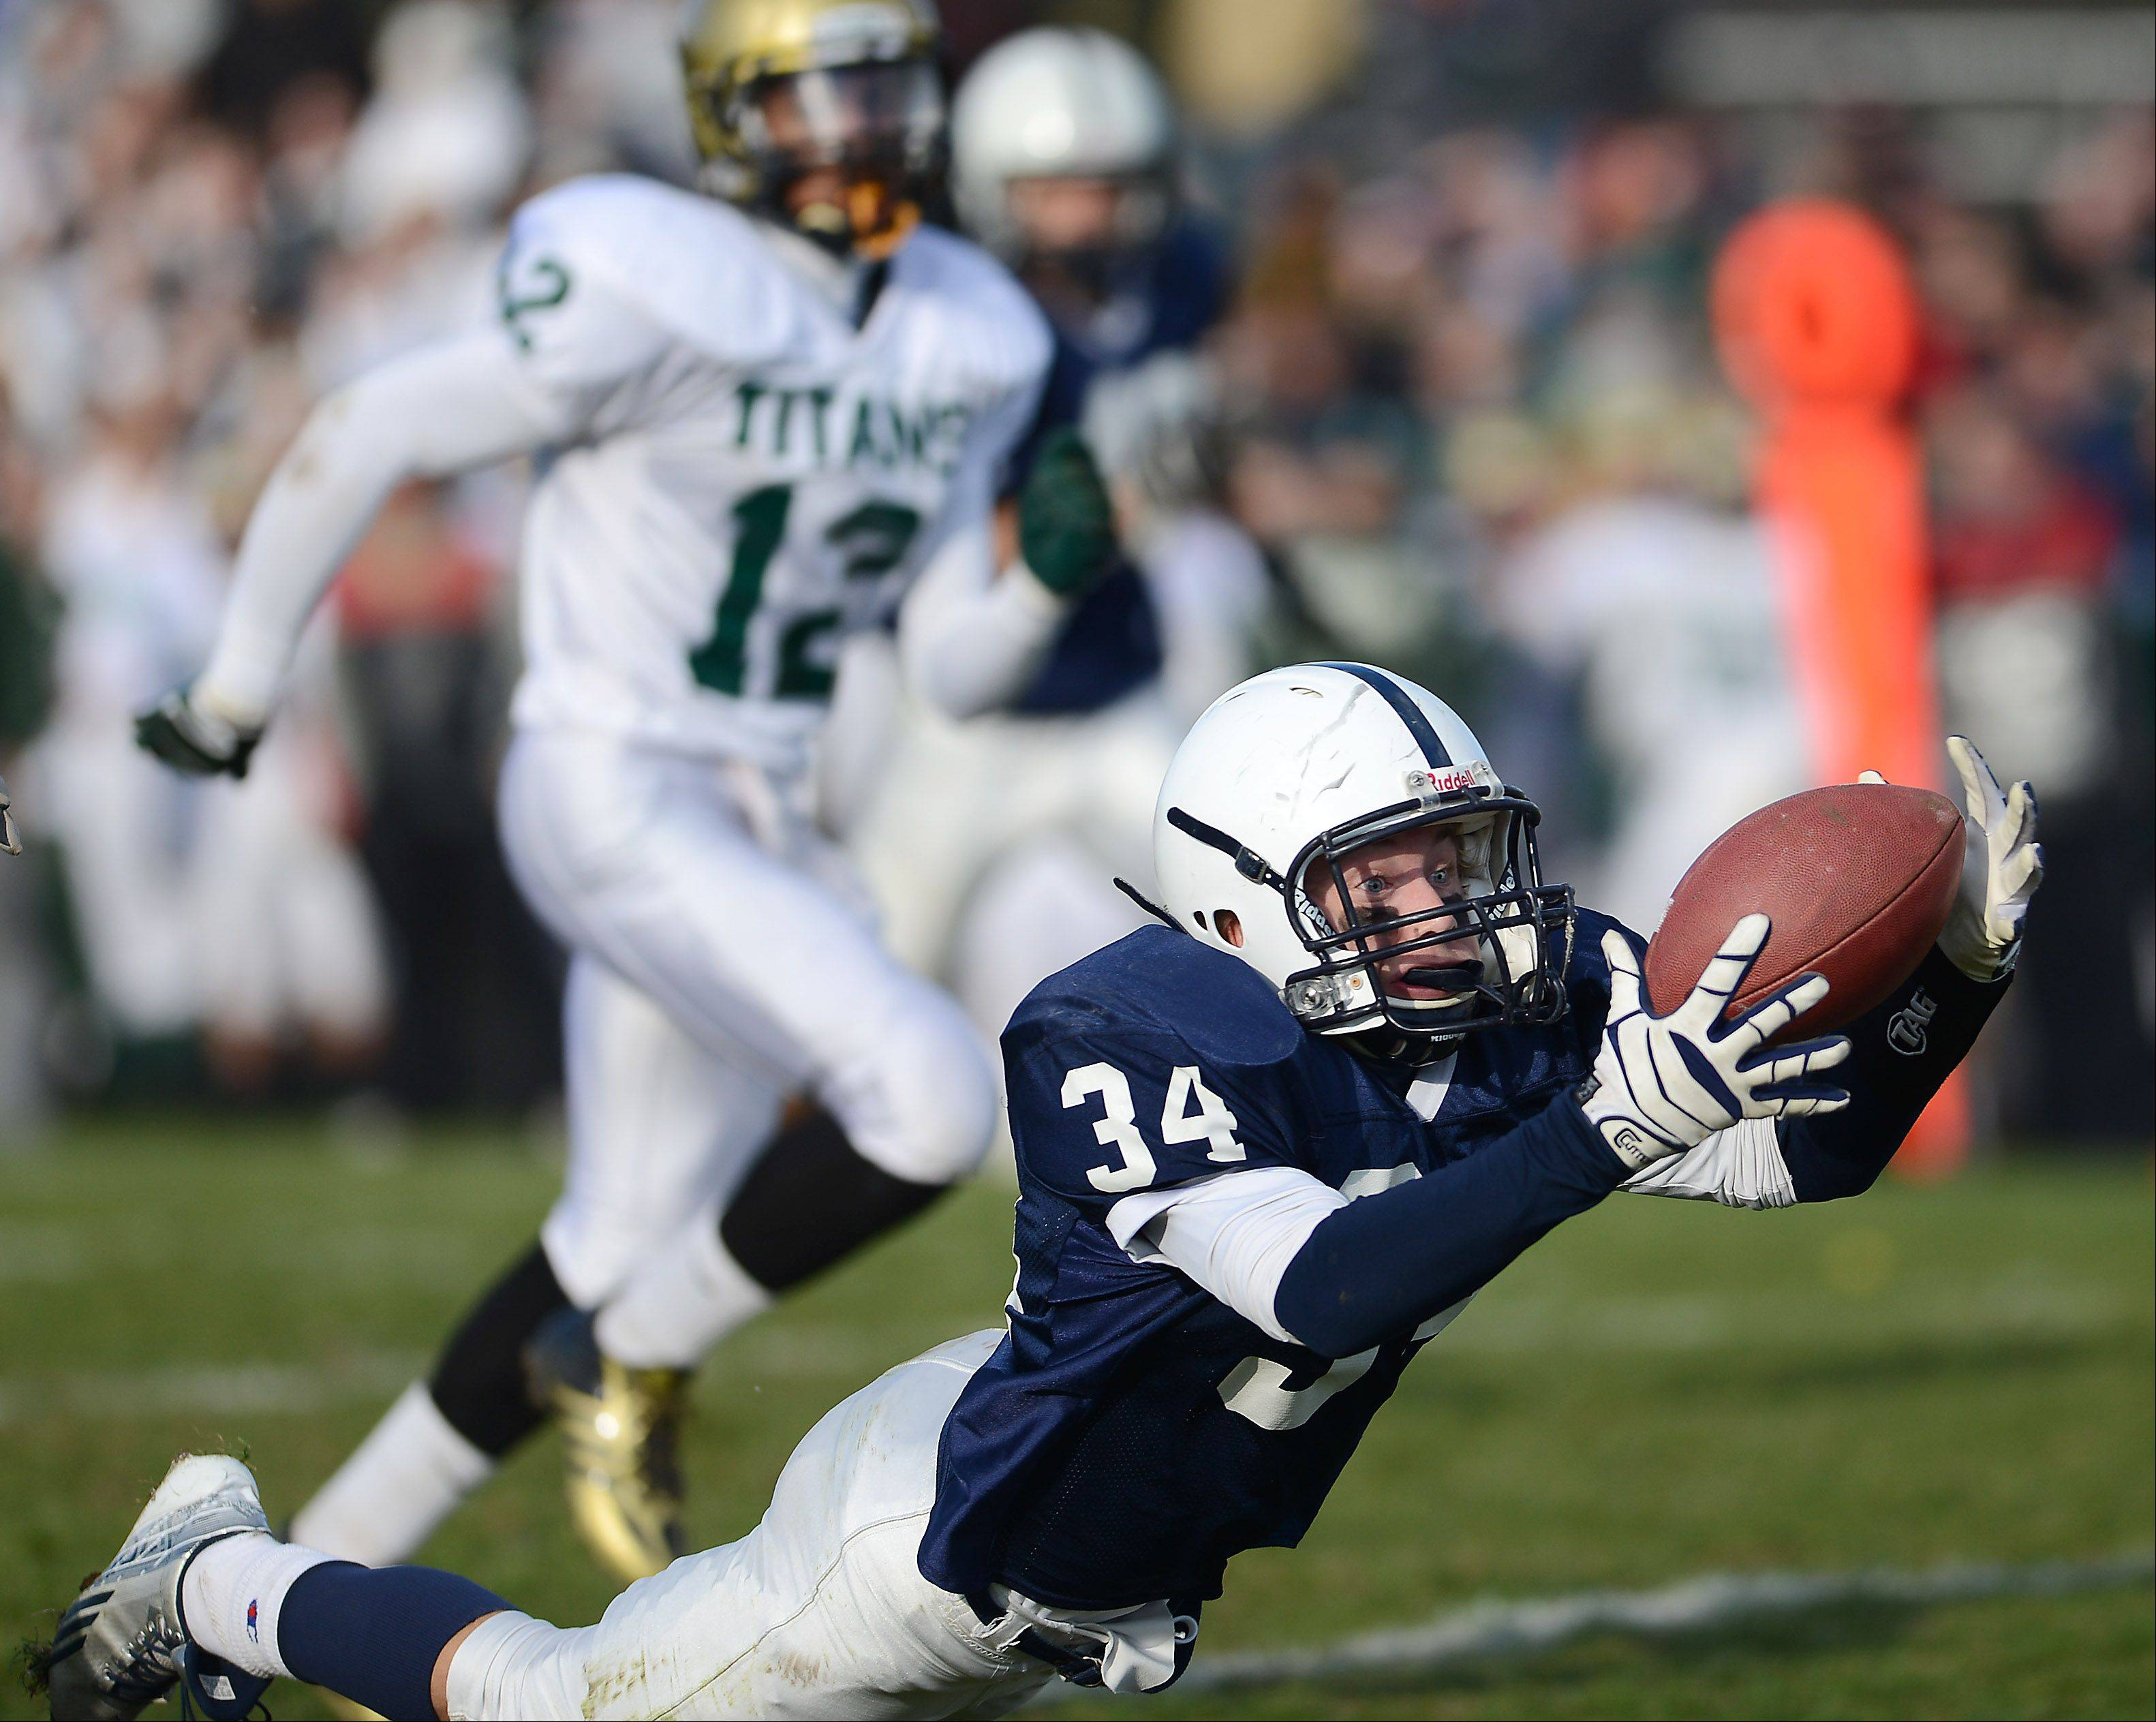 Cary-Grove's George Hartke (34) makes a diving catch during Saturday's game in Cary.